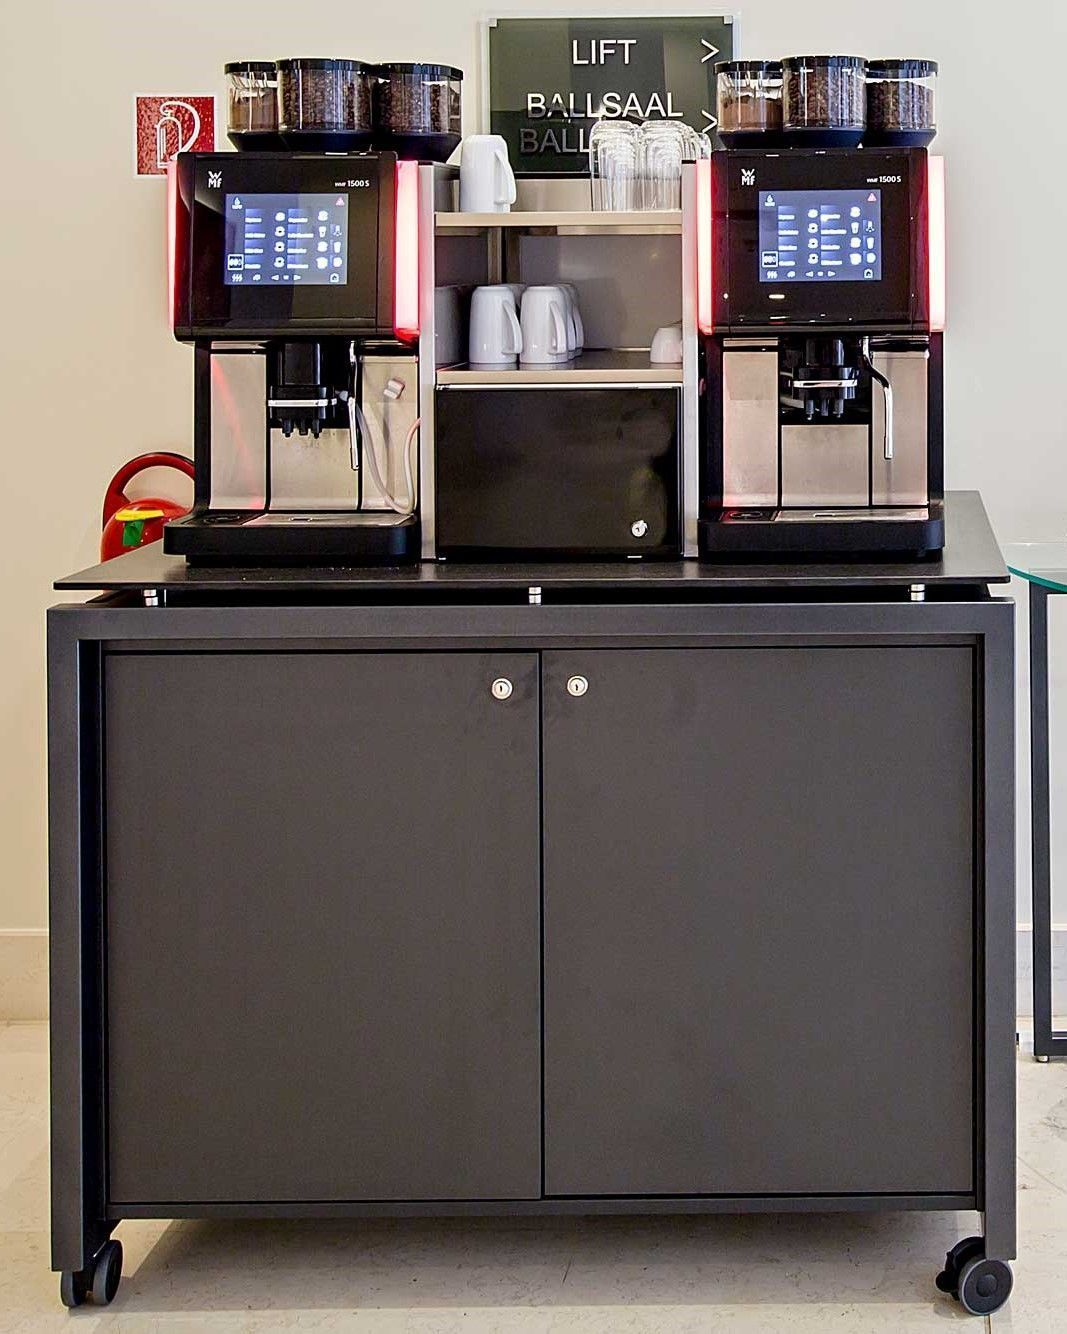 Pin by Jeff Atkins Coffee Stations on Cafe interior